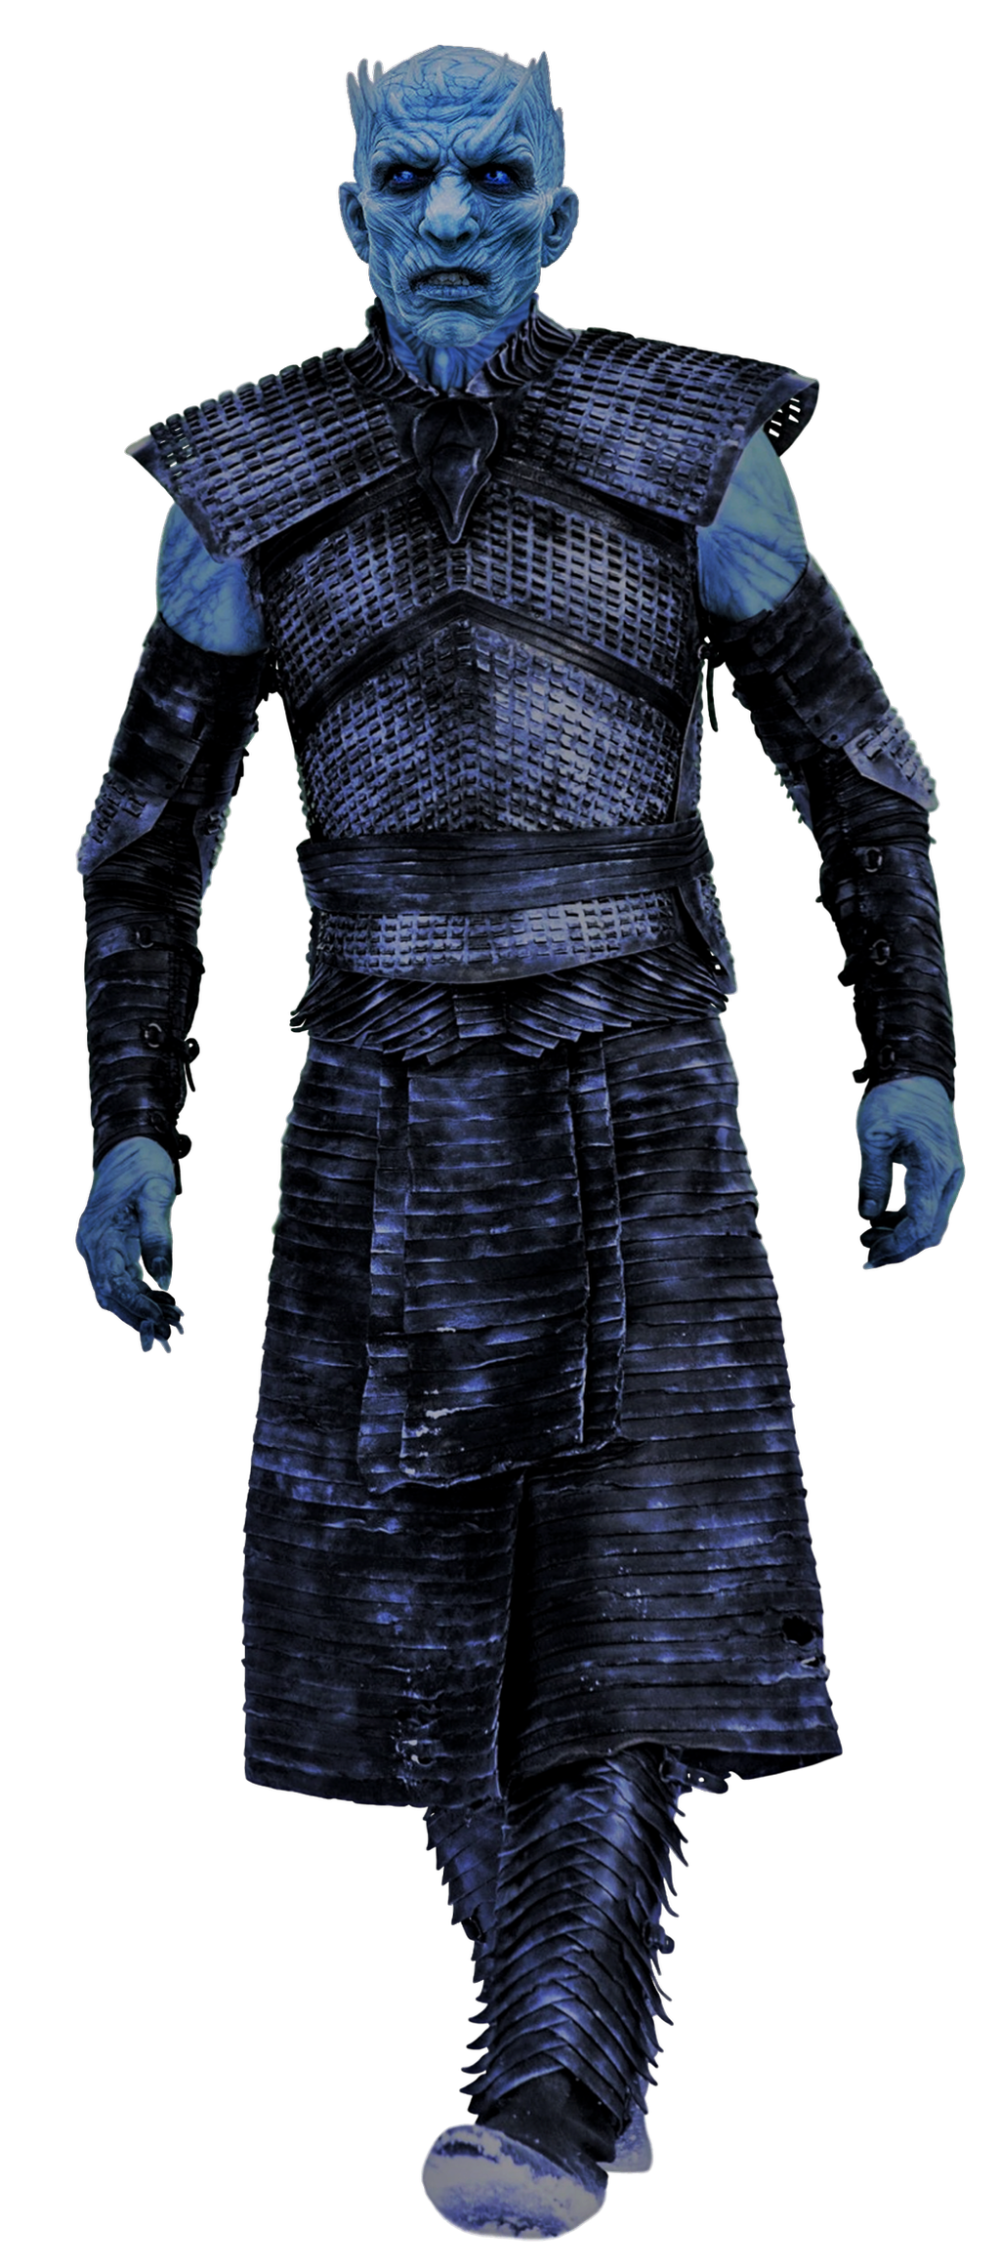 Game Of Thrones The Night King By Camo Flauge On Deviantart Game Of Thrones Artwork Night King Game Of Thrones King